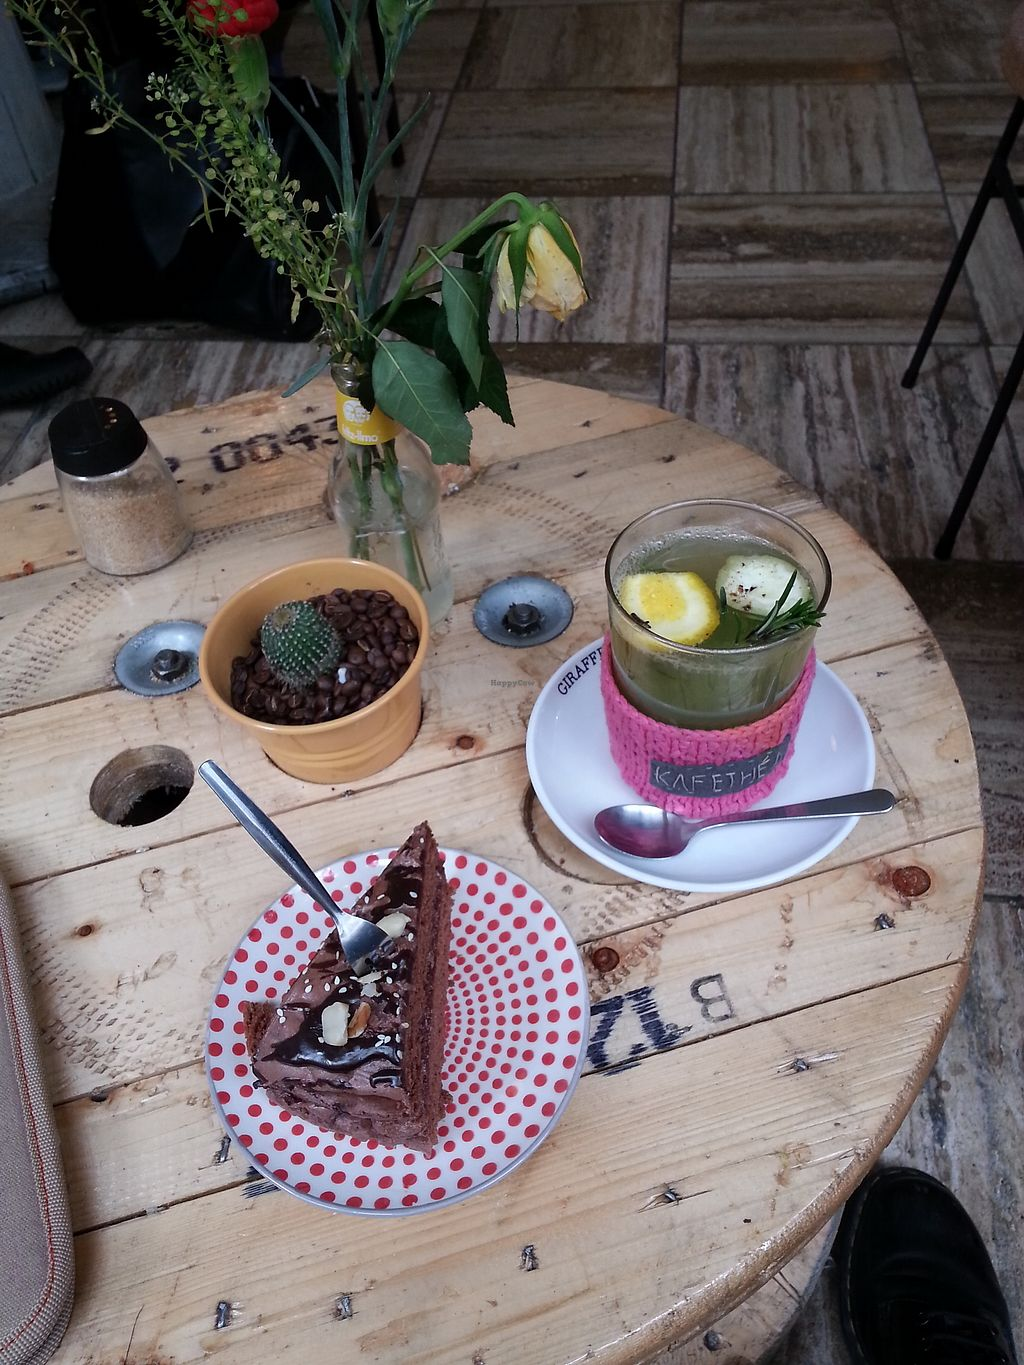 """Photo of KAFETHEA  by <a href=""""/members/profile/ManueEmmaLeTllc"""">ManueEmmaLeTllc</a> <br/>homemade lemon-rosemary hot tea and chocolate cake <br/> August 9, 2017  - <a href='/contact/abuse/image/82368/290855'>Report</a>"""